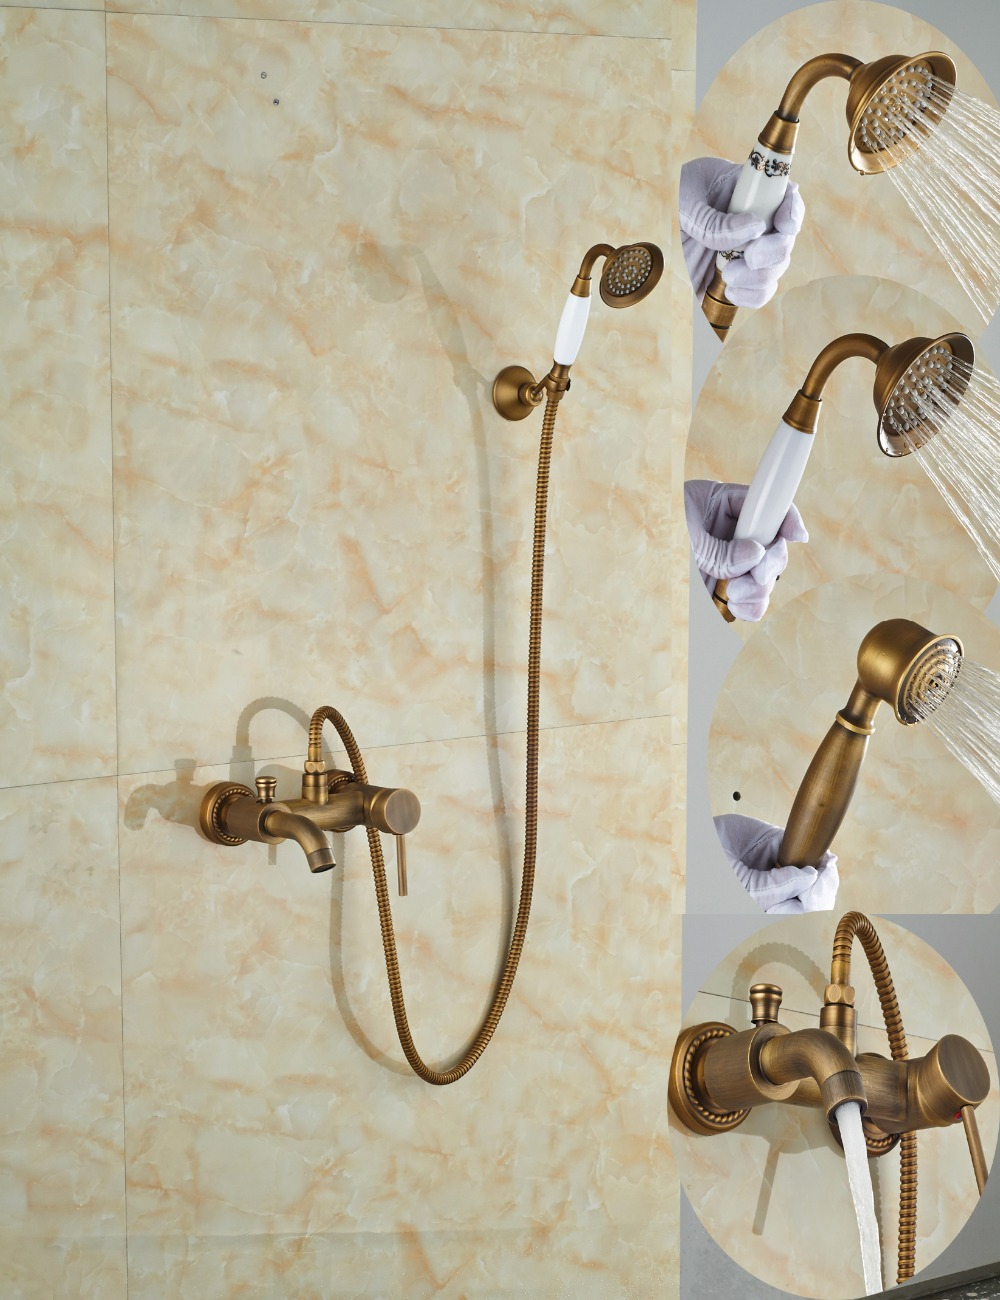 Wholesale And Retail Luxury Antique Brass Wall Mounted Bathroom Tub Faucet Single Handle Valve Mixer Tap W/ Hand Shower Sprayer